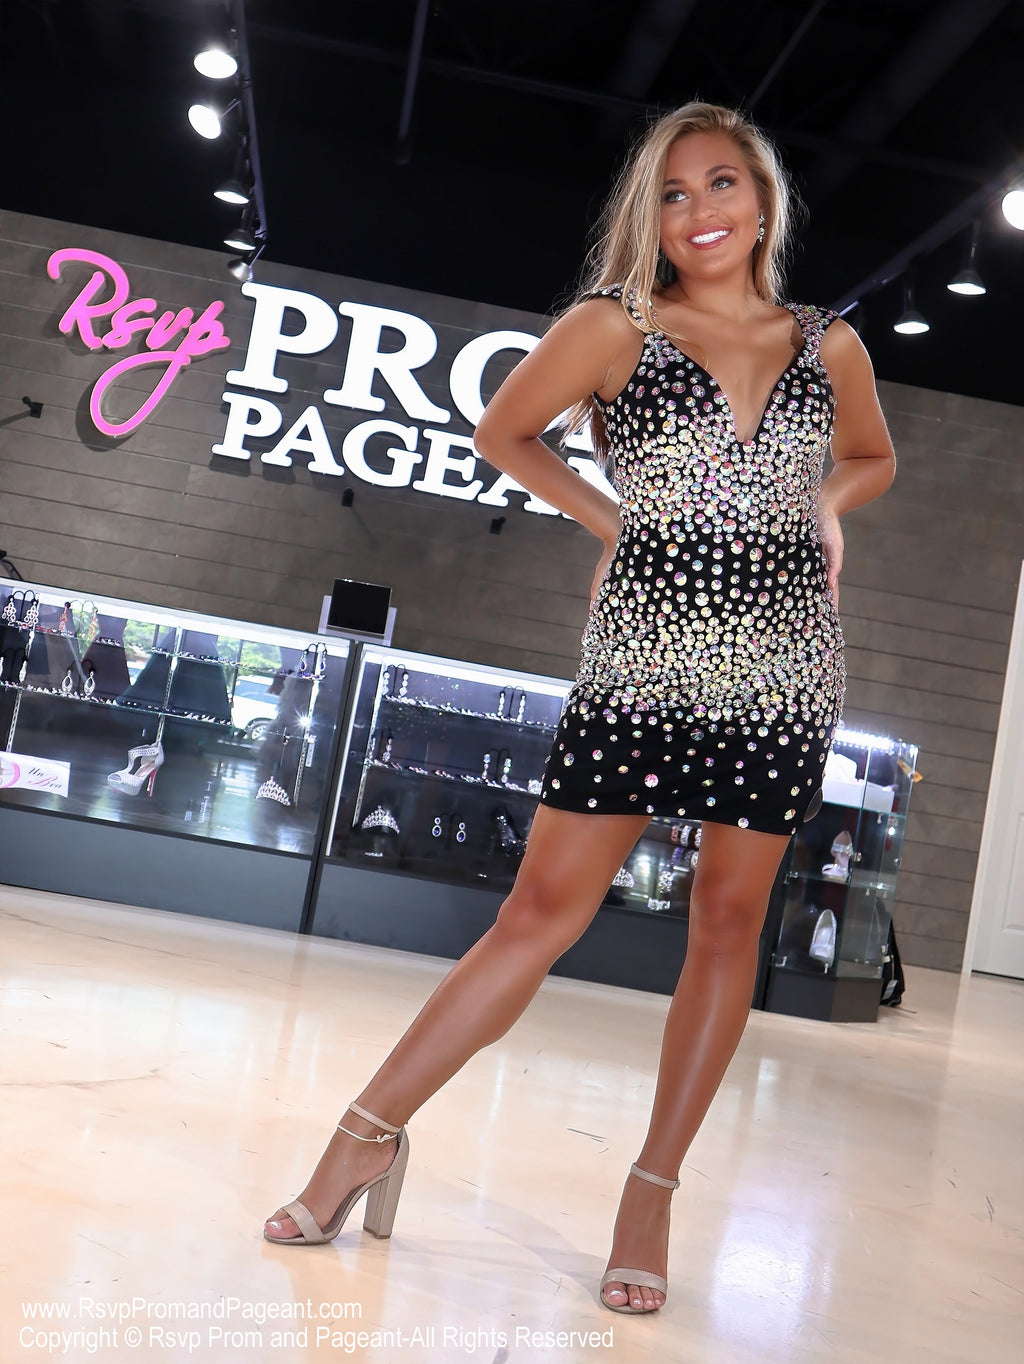 Model in the Rsvp store in Dazzling Black AB Stone V-Neck Short Homecoming Dress at Rsvp Prom and Pageant, Johns Creek, Georgia